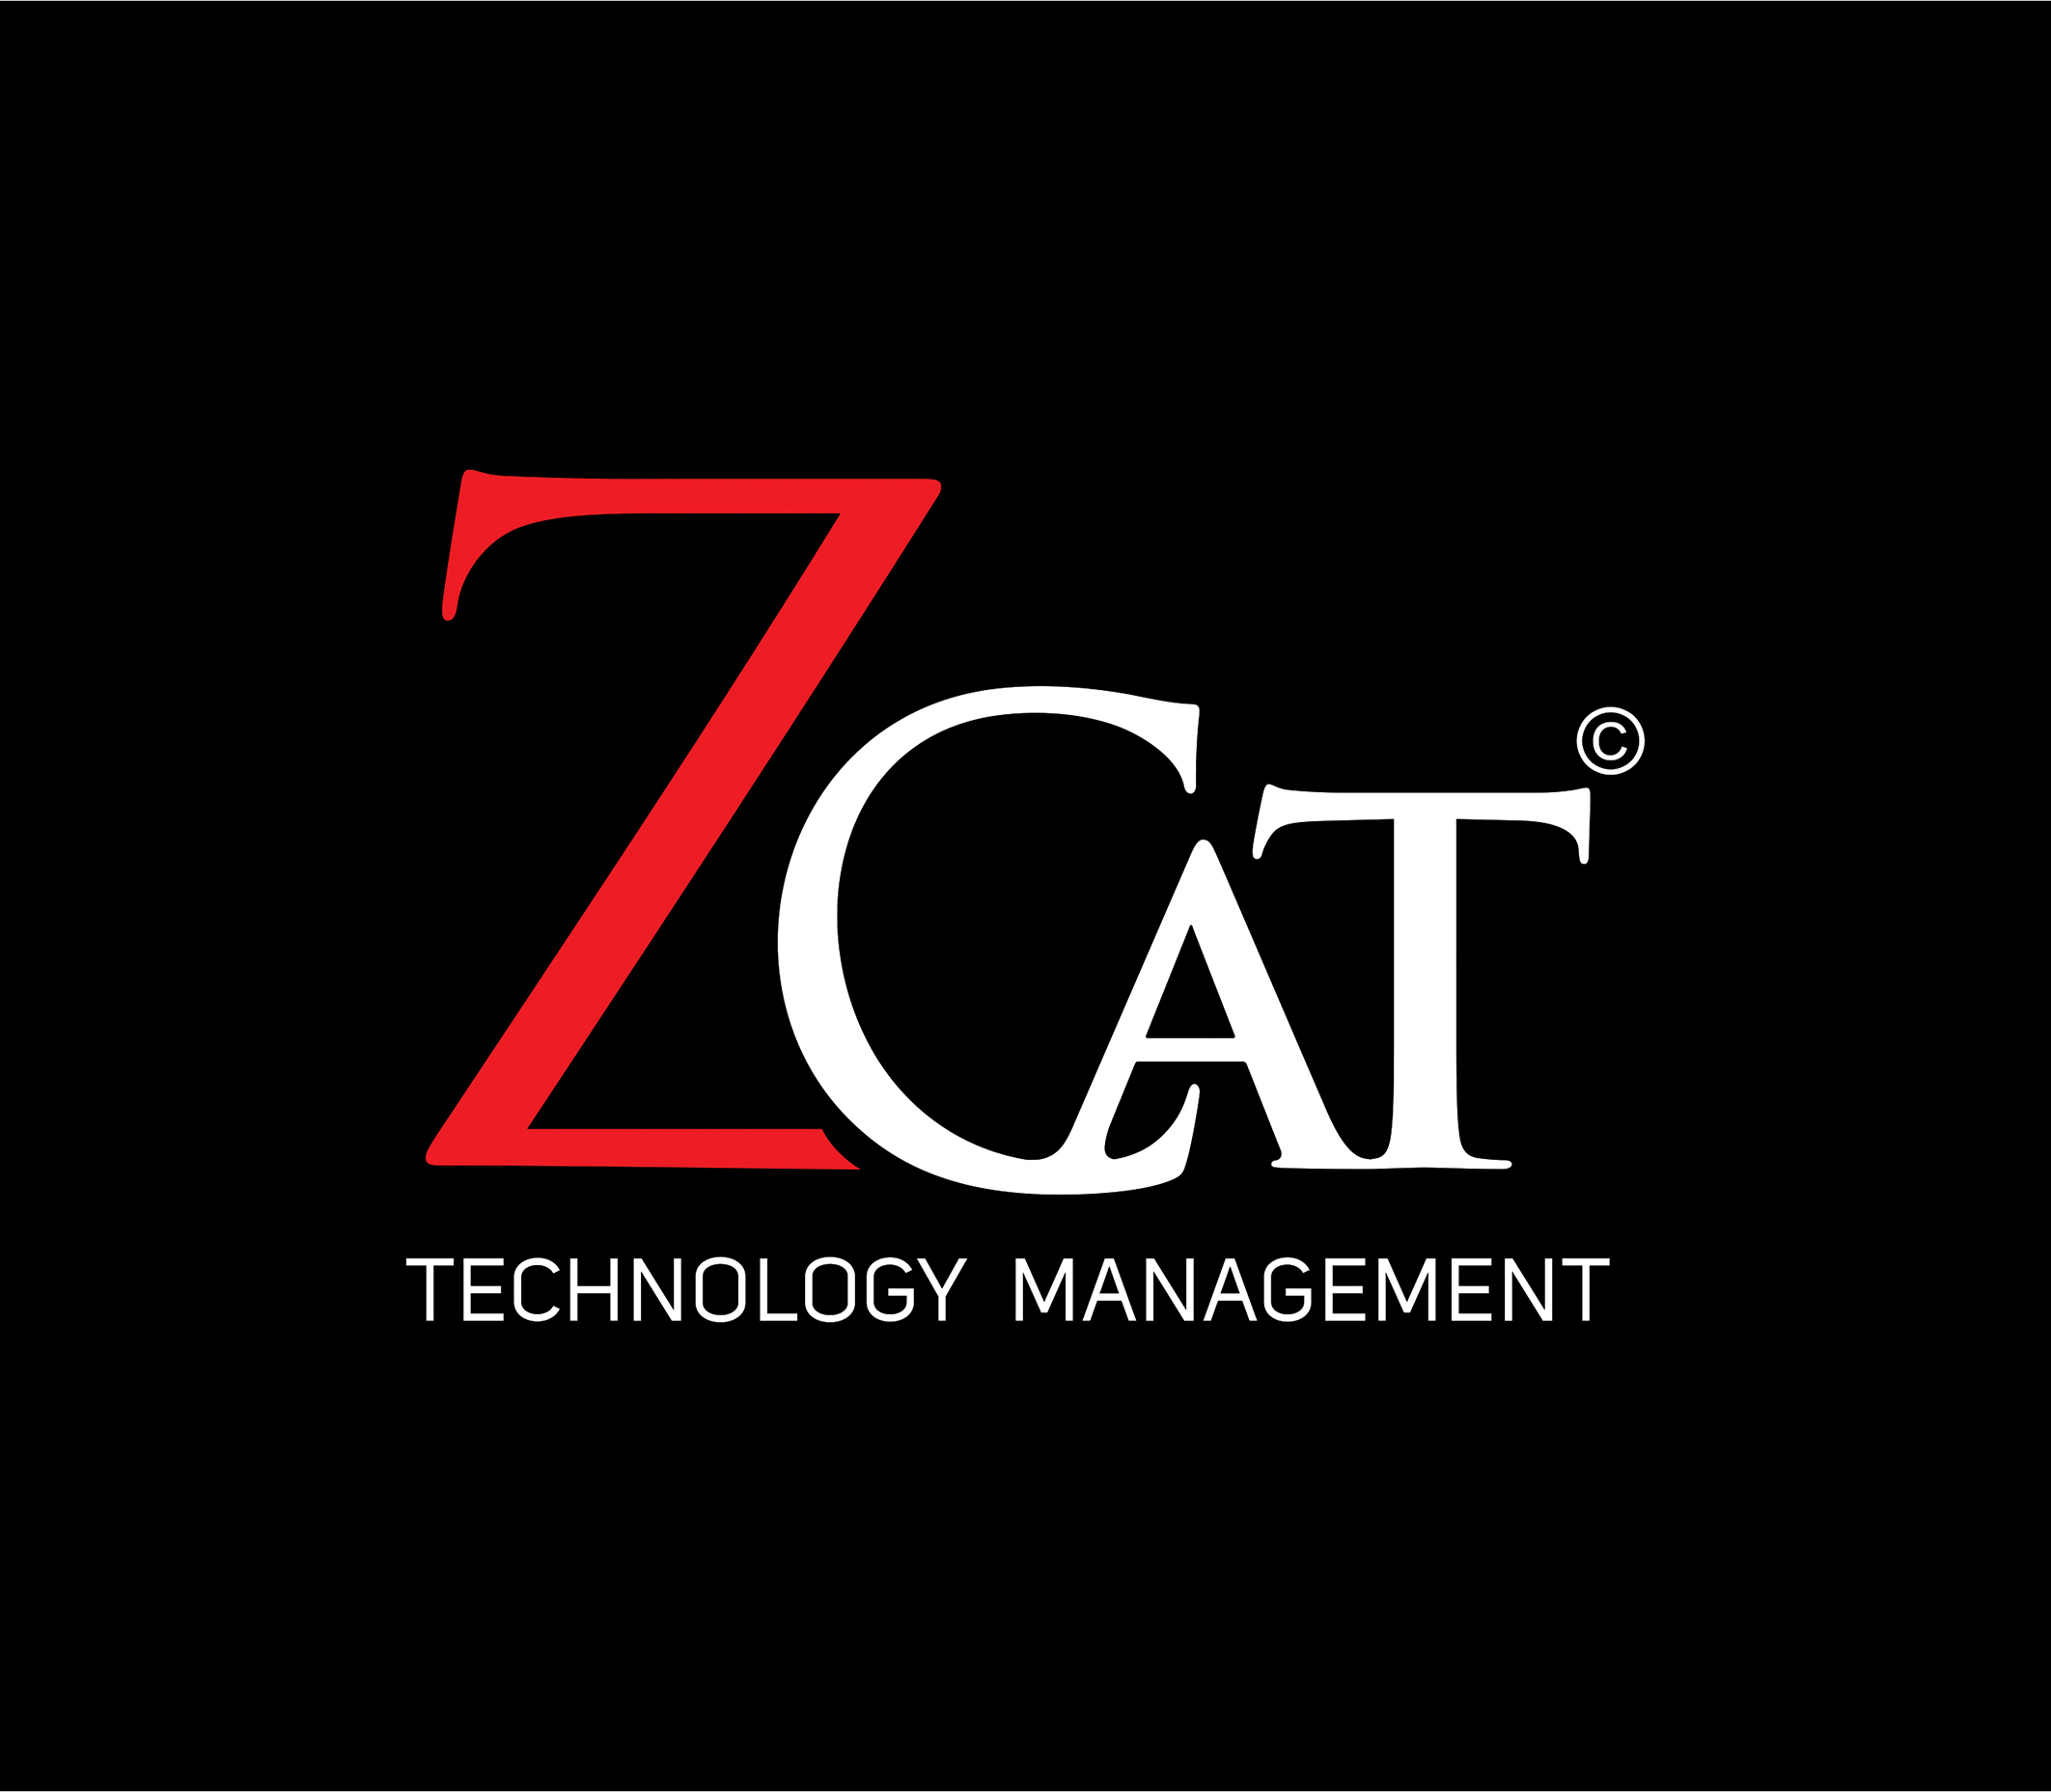 Zcat Technology Management - logo